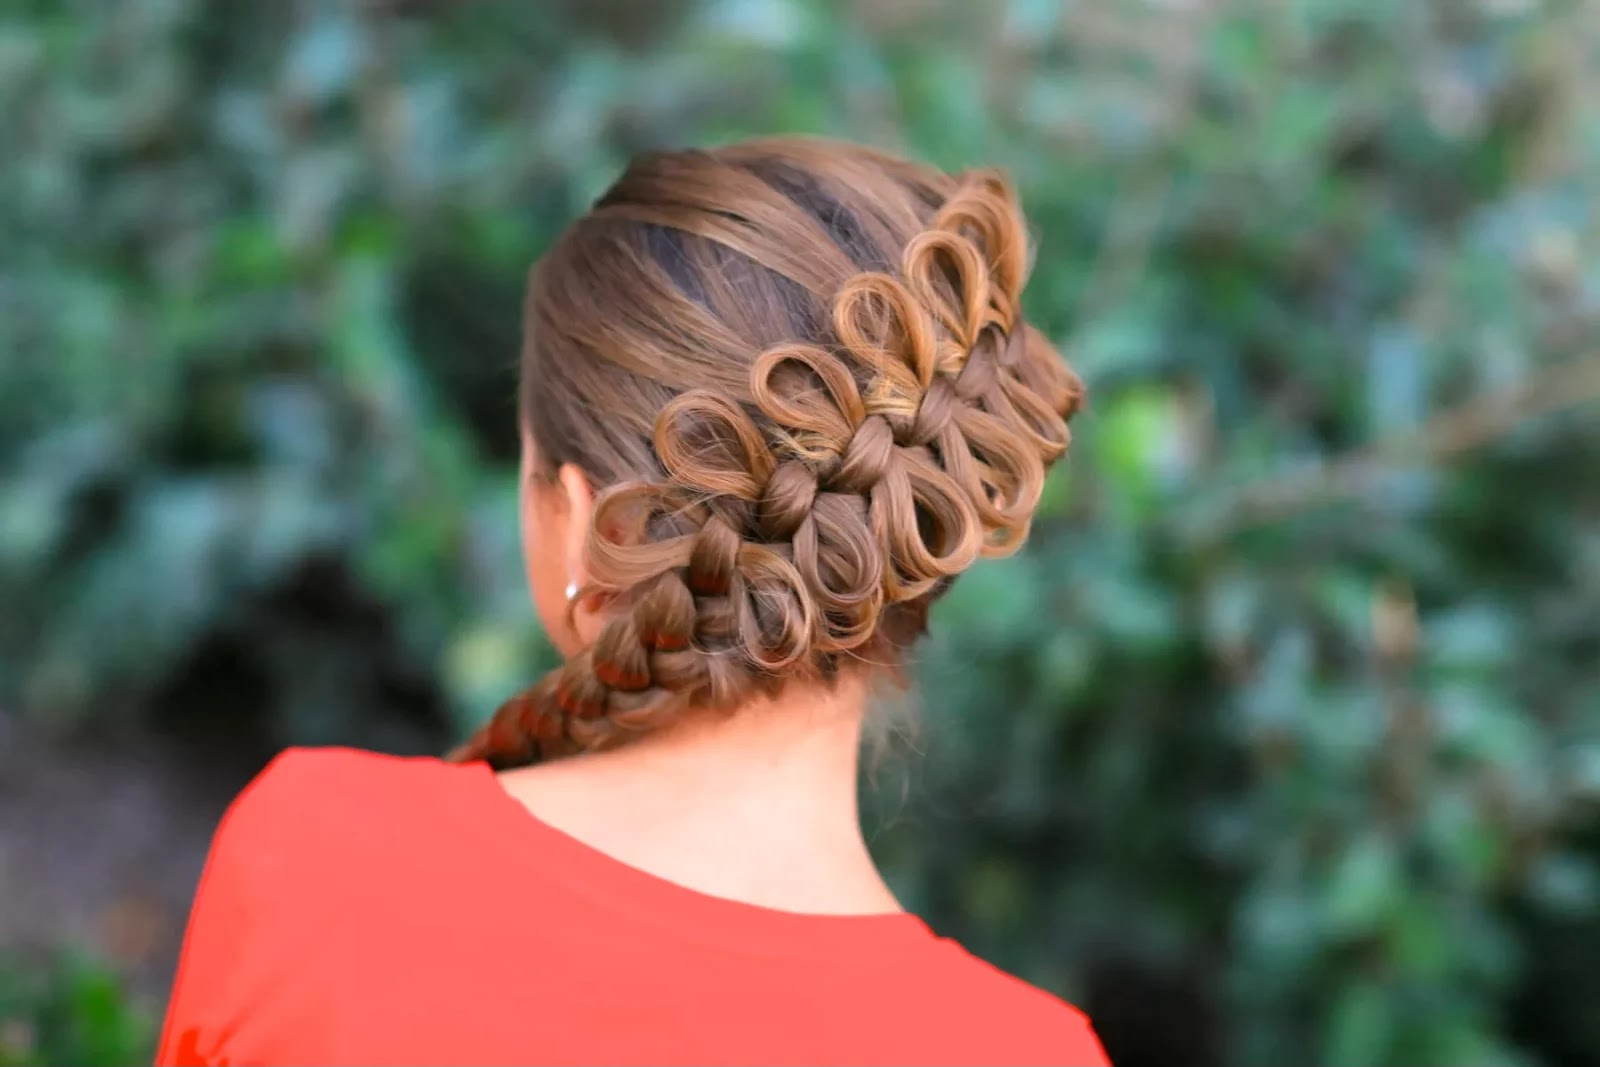 Women Fashion Updates: Diagonal Bow Braid Hairstyle For Girls